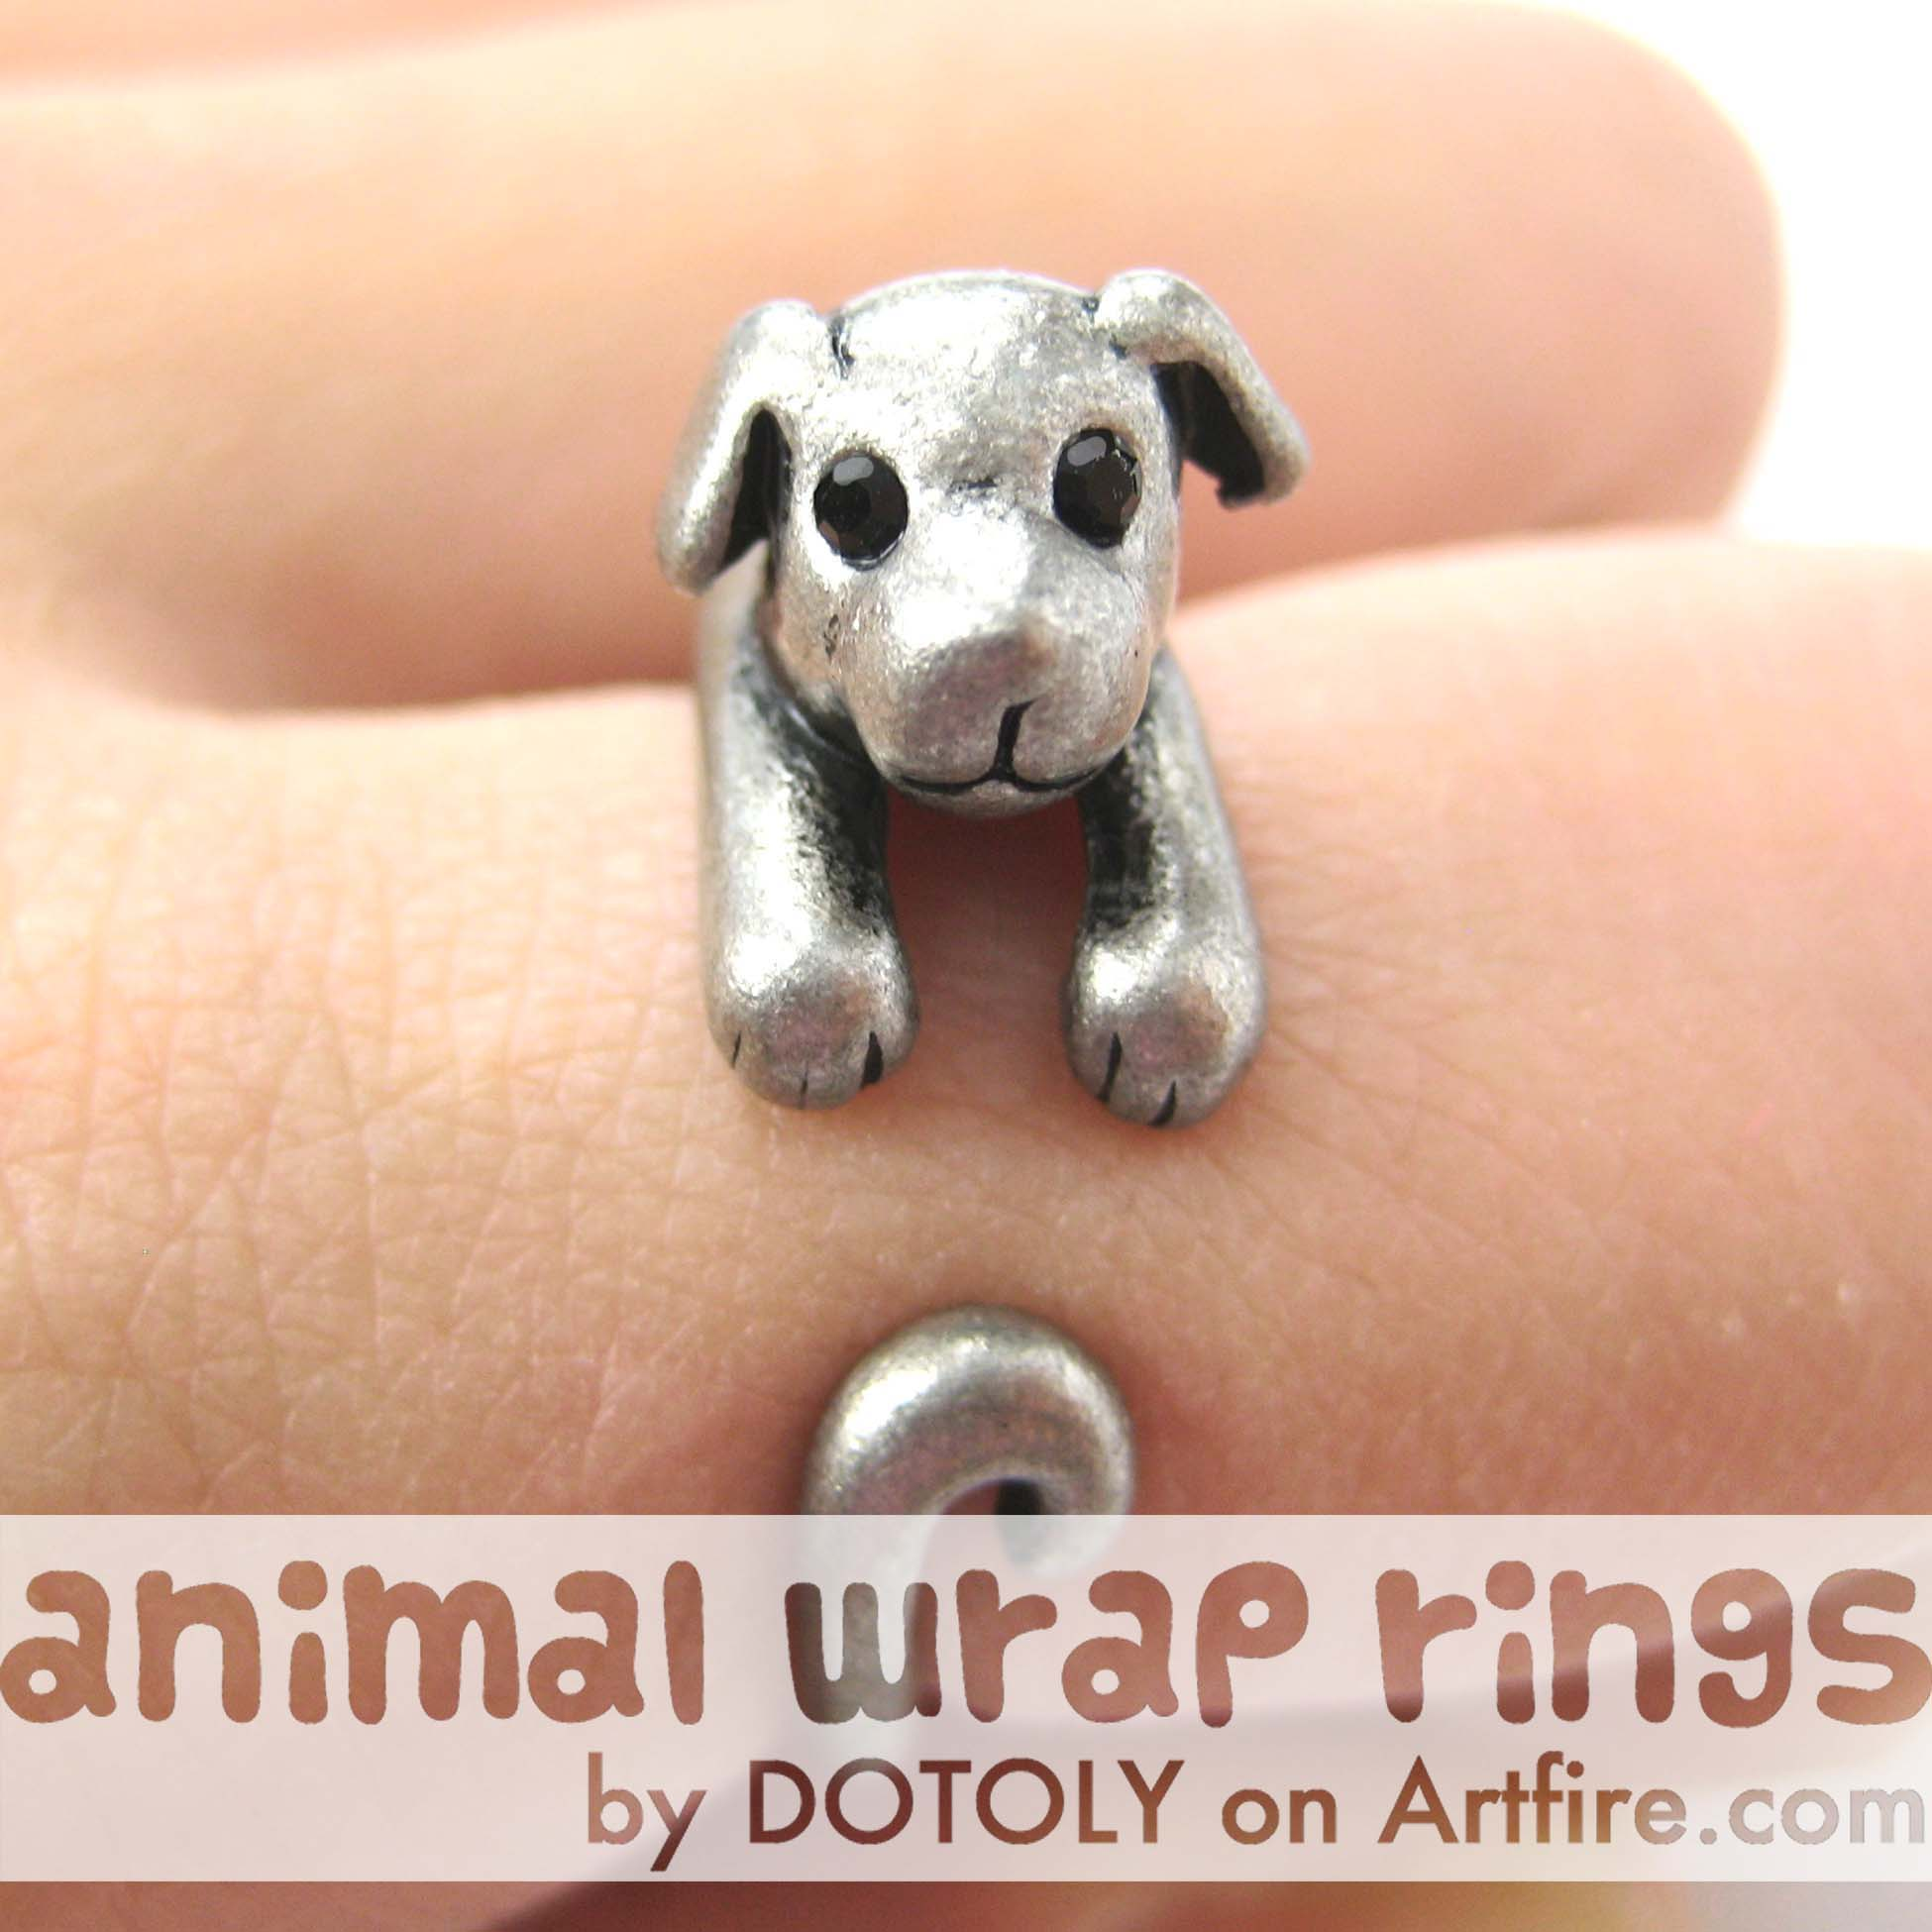 puppy-dog-animal-wrap-ring-in-silver